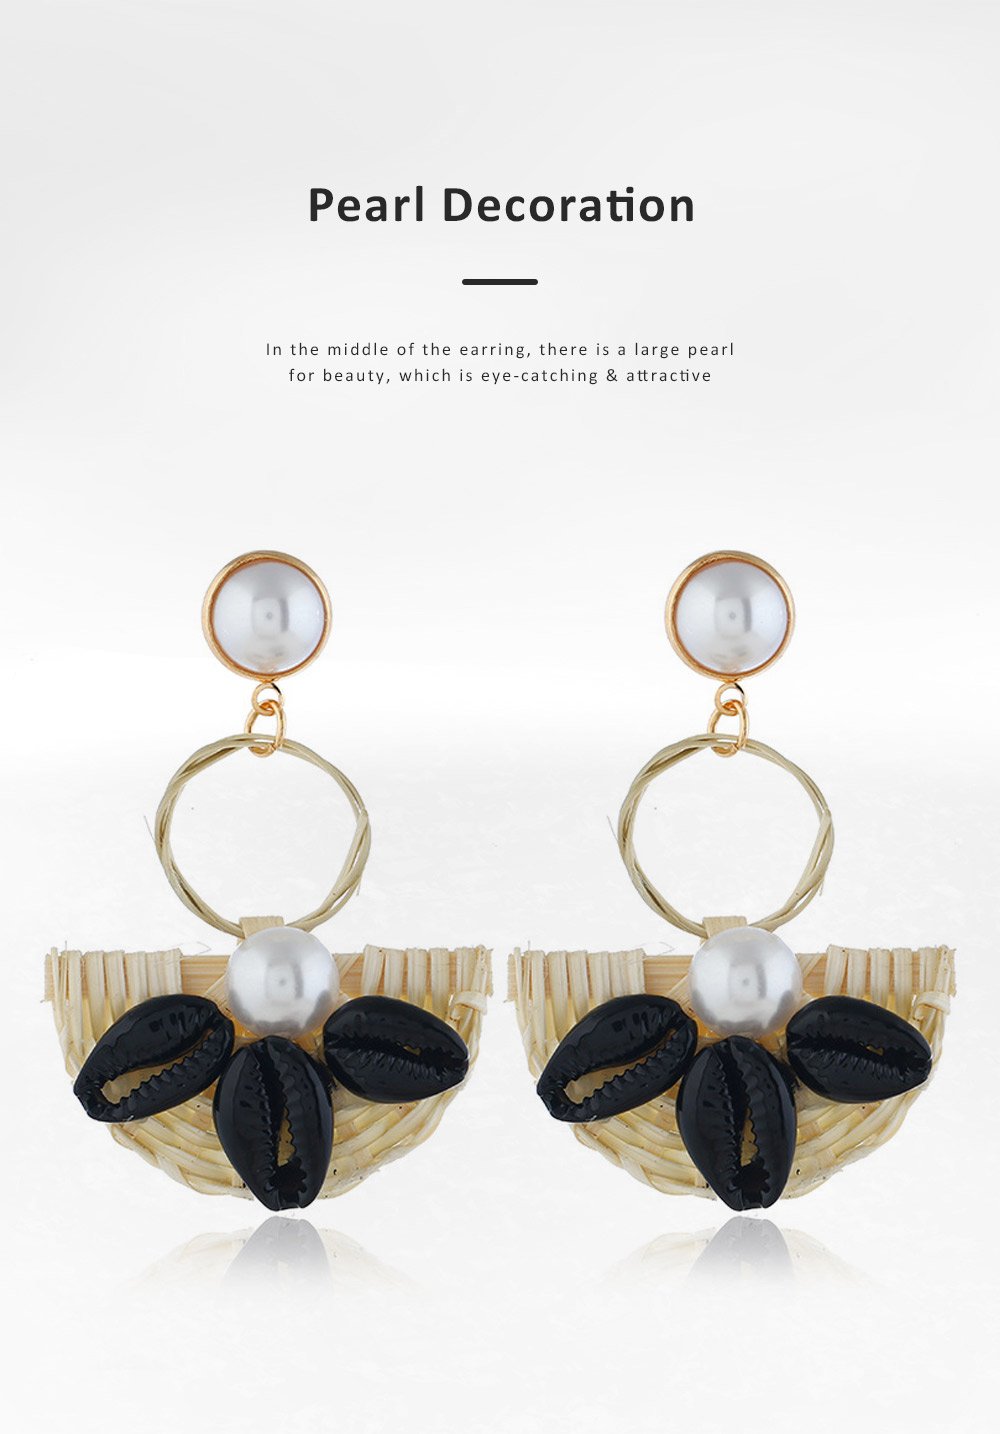 Natural Ocean Style Earring Colorful Outfit Accessory Jewelry Shell Rattan Pearl Earring for Women Girls 2